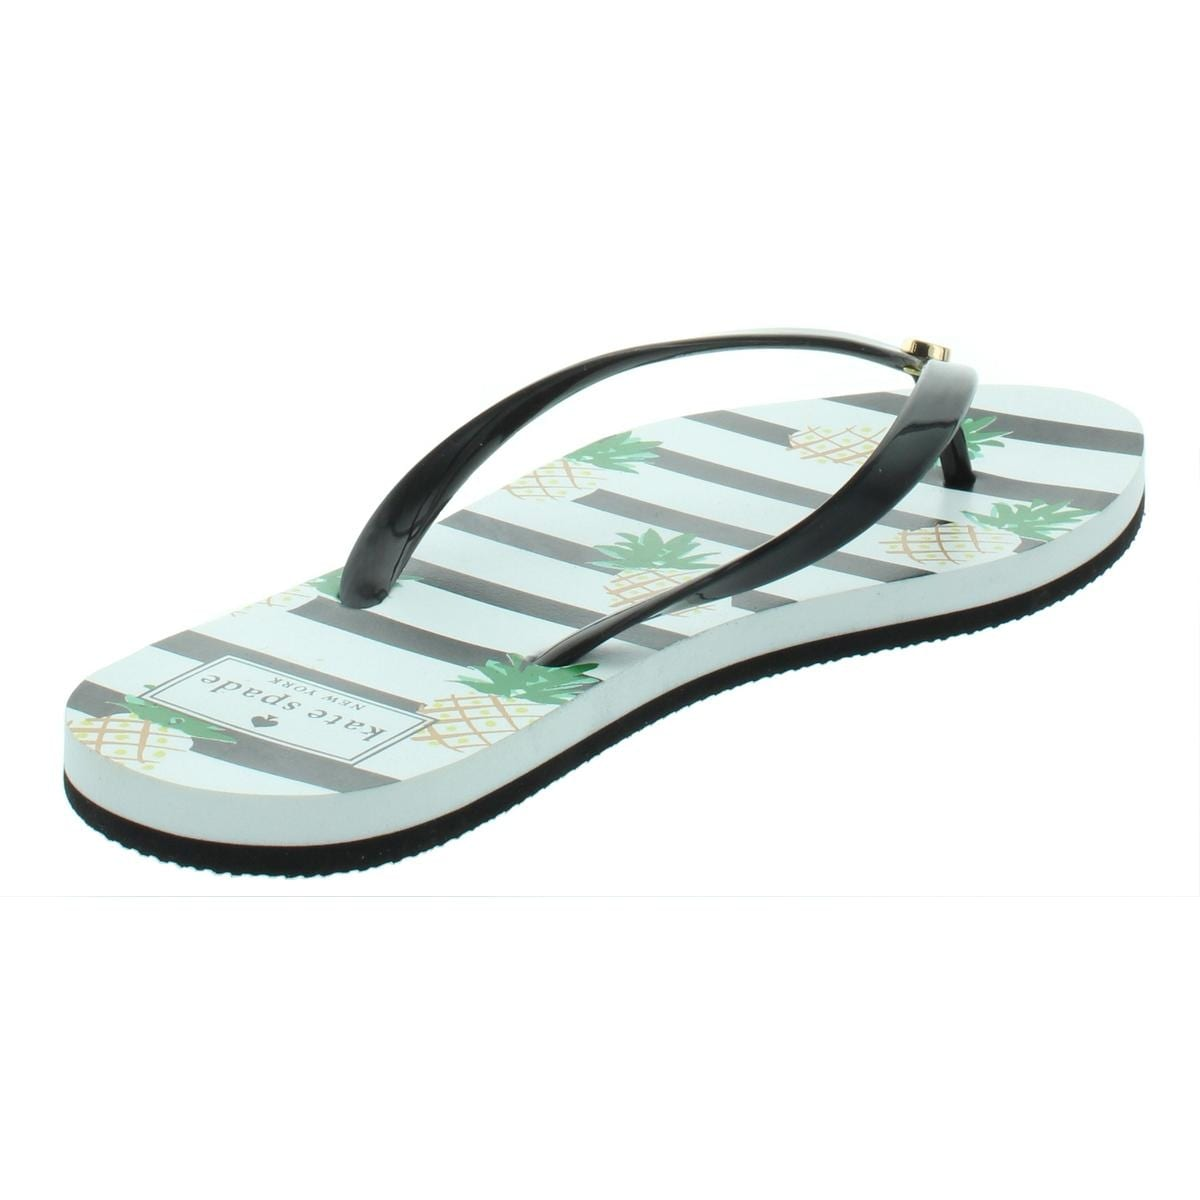 2f745eeea7bc Shop Kate Spade Womens Nassau Flat Sandals Pineapple Striped - Free  Shipping On Orders Over  45 - Overstock - 26639458